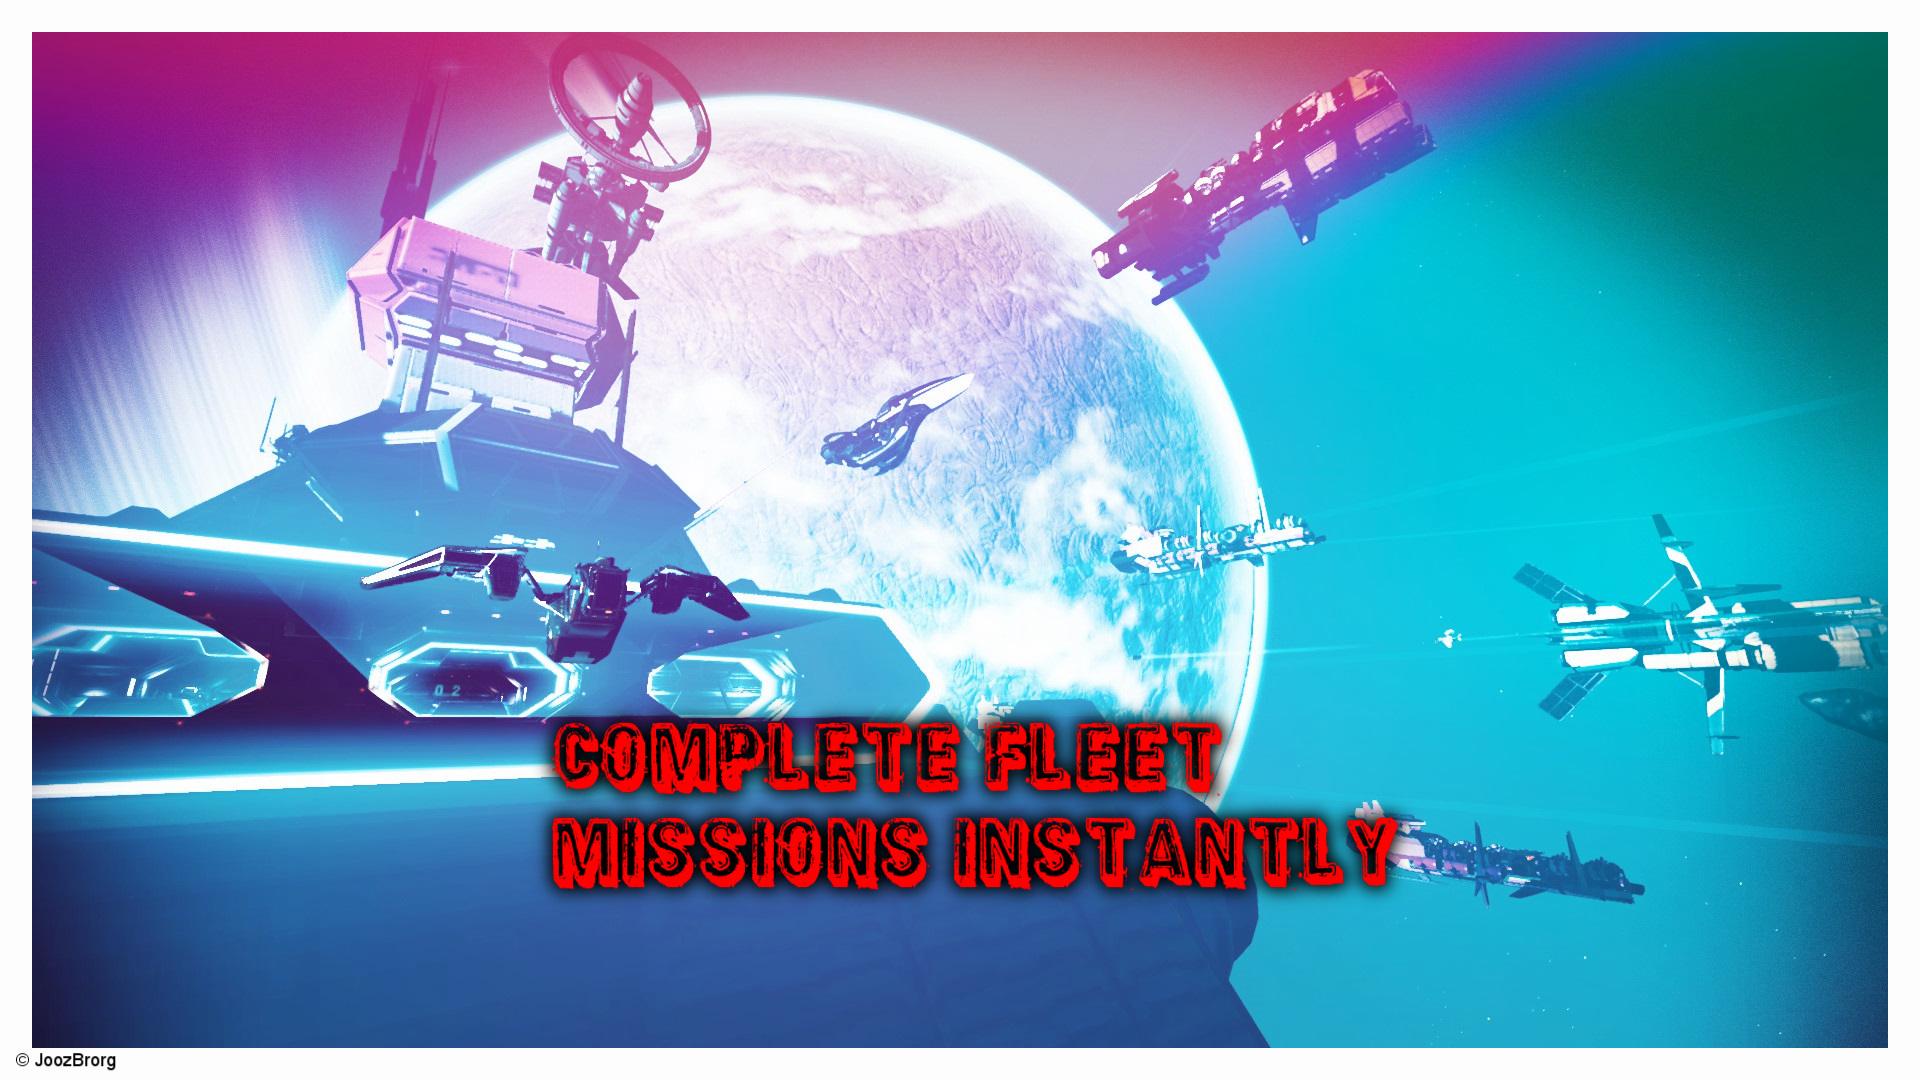 Complete Fleet Missions instantly